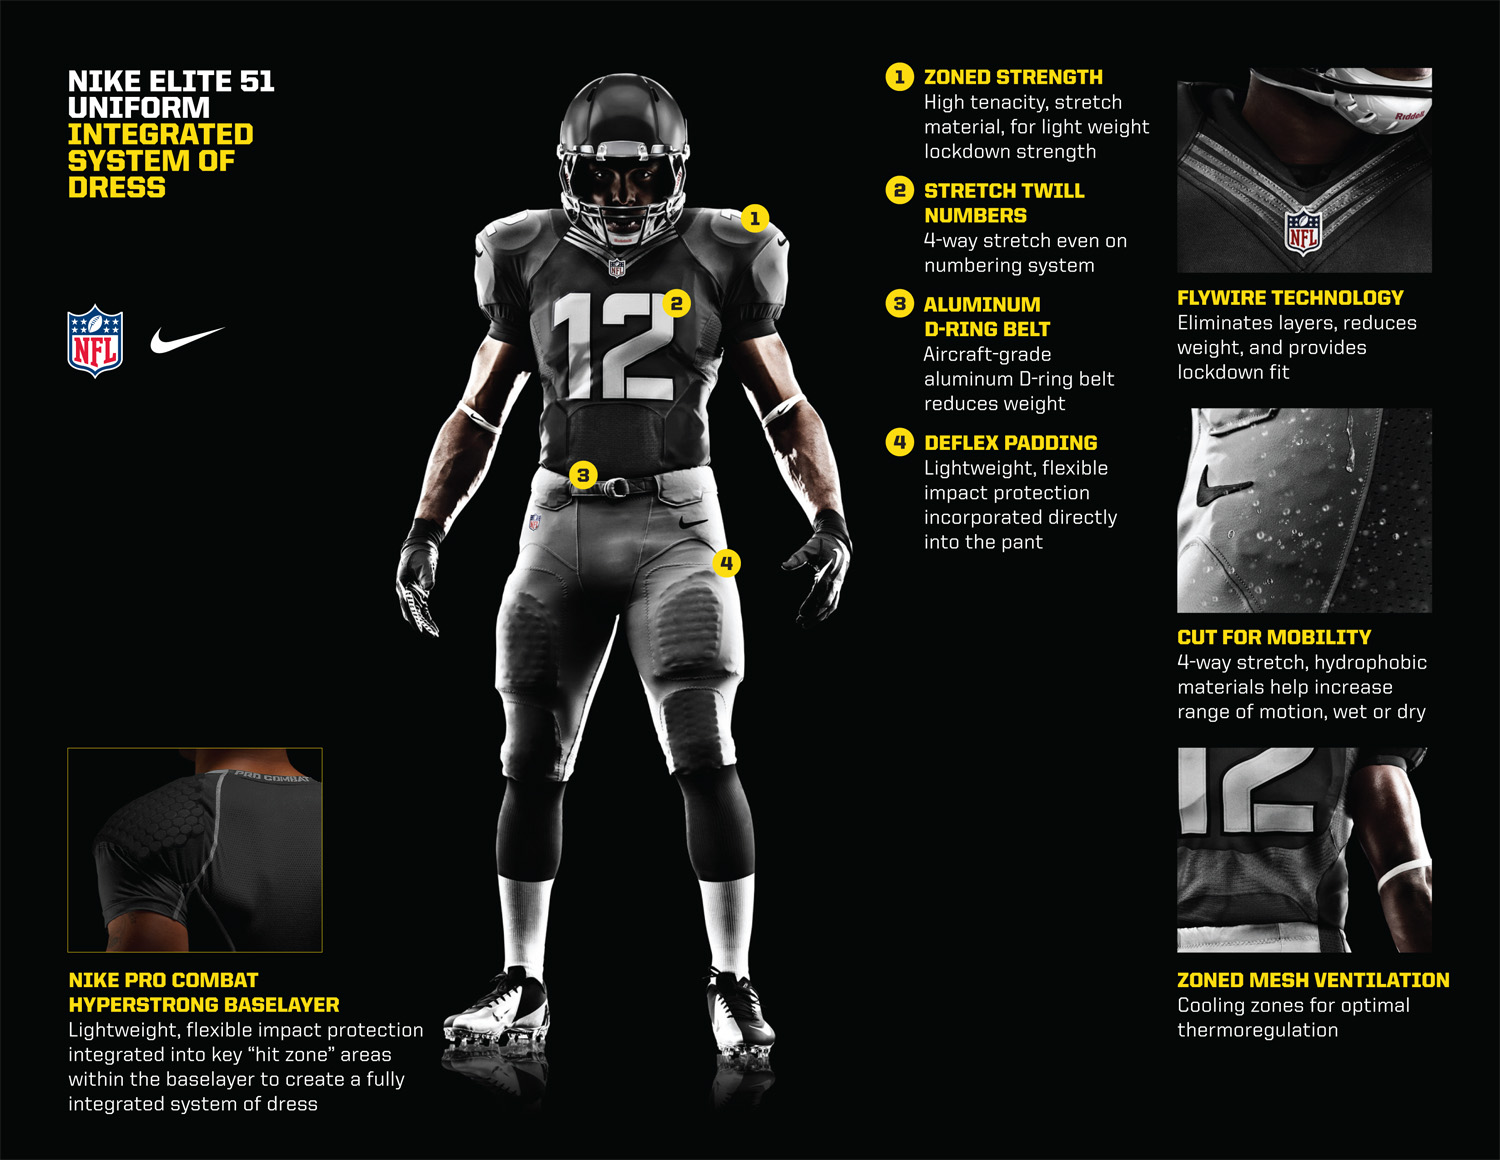 Nike's new NFL uniforms are lighter, use 21st century fabric